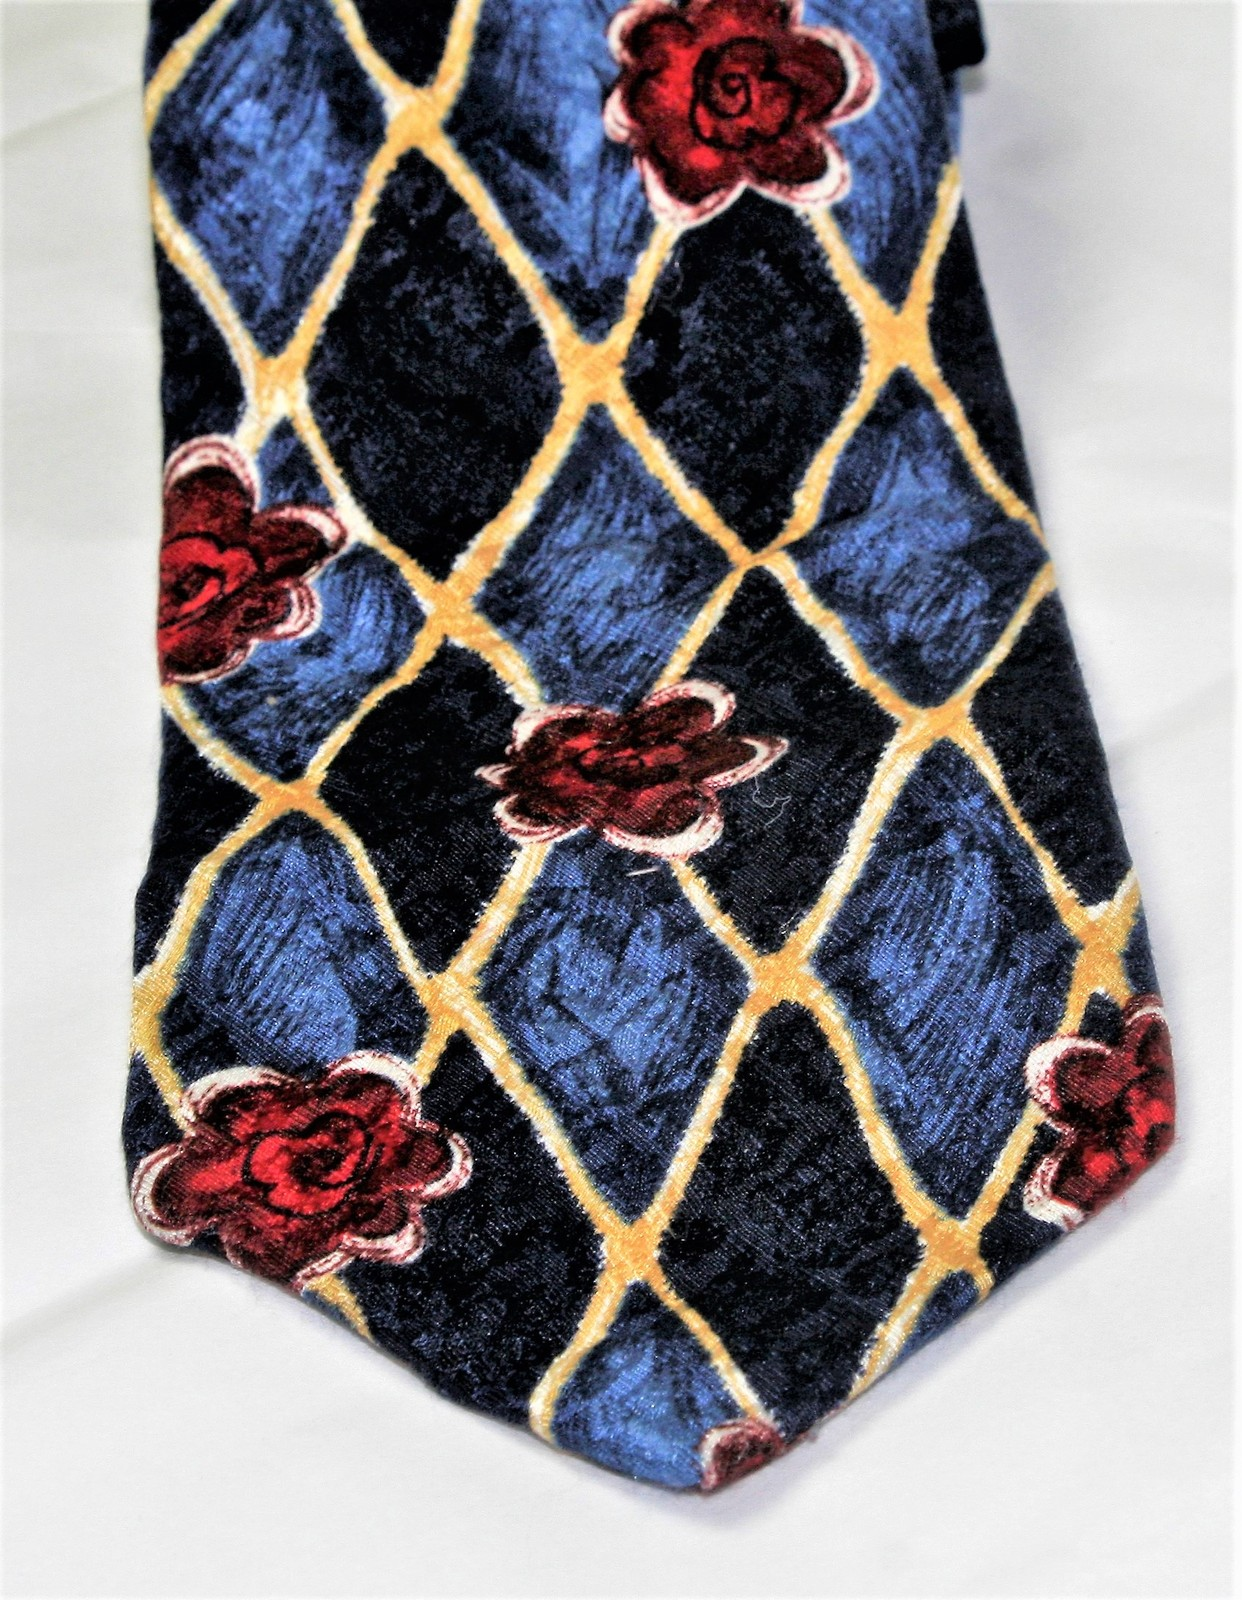 Classic Geoffrey Beene 100% Silk Men's Necktie Blues/golds/reds image 1